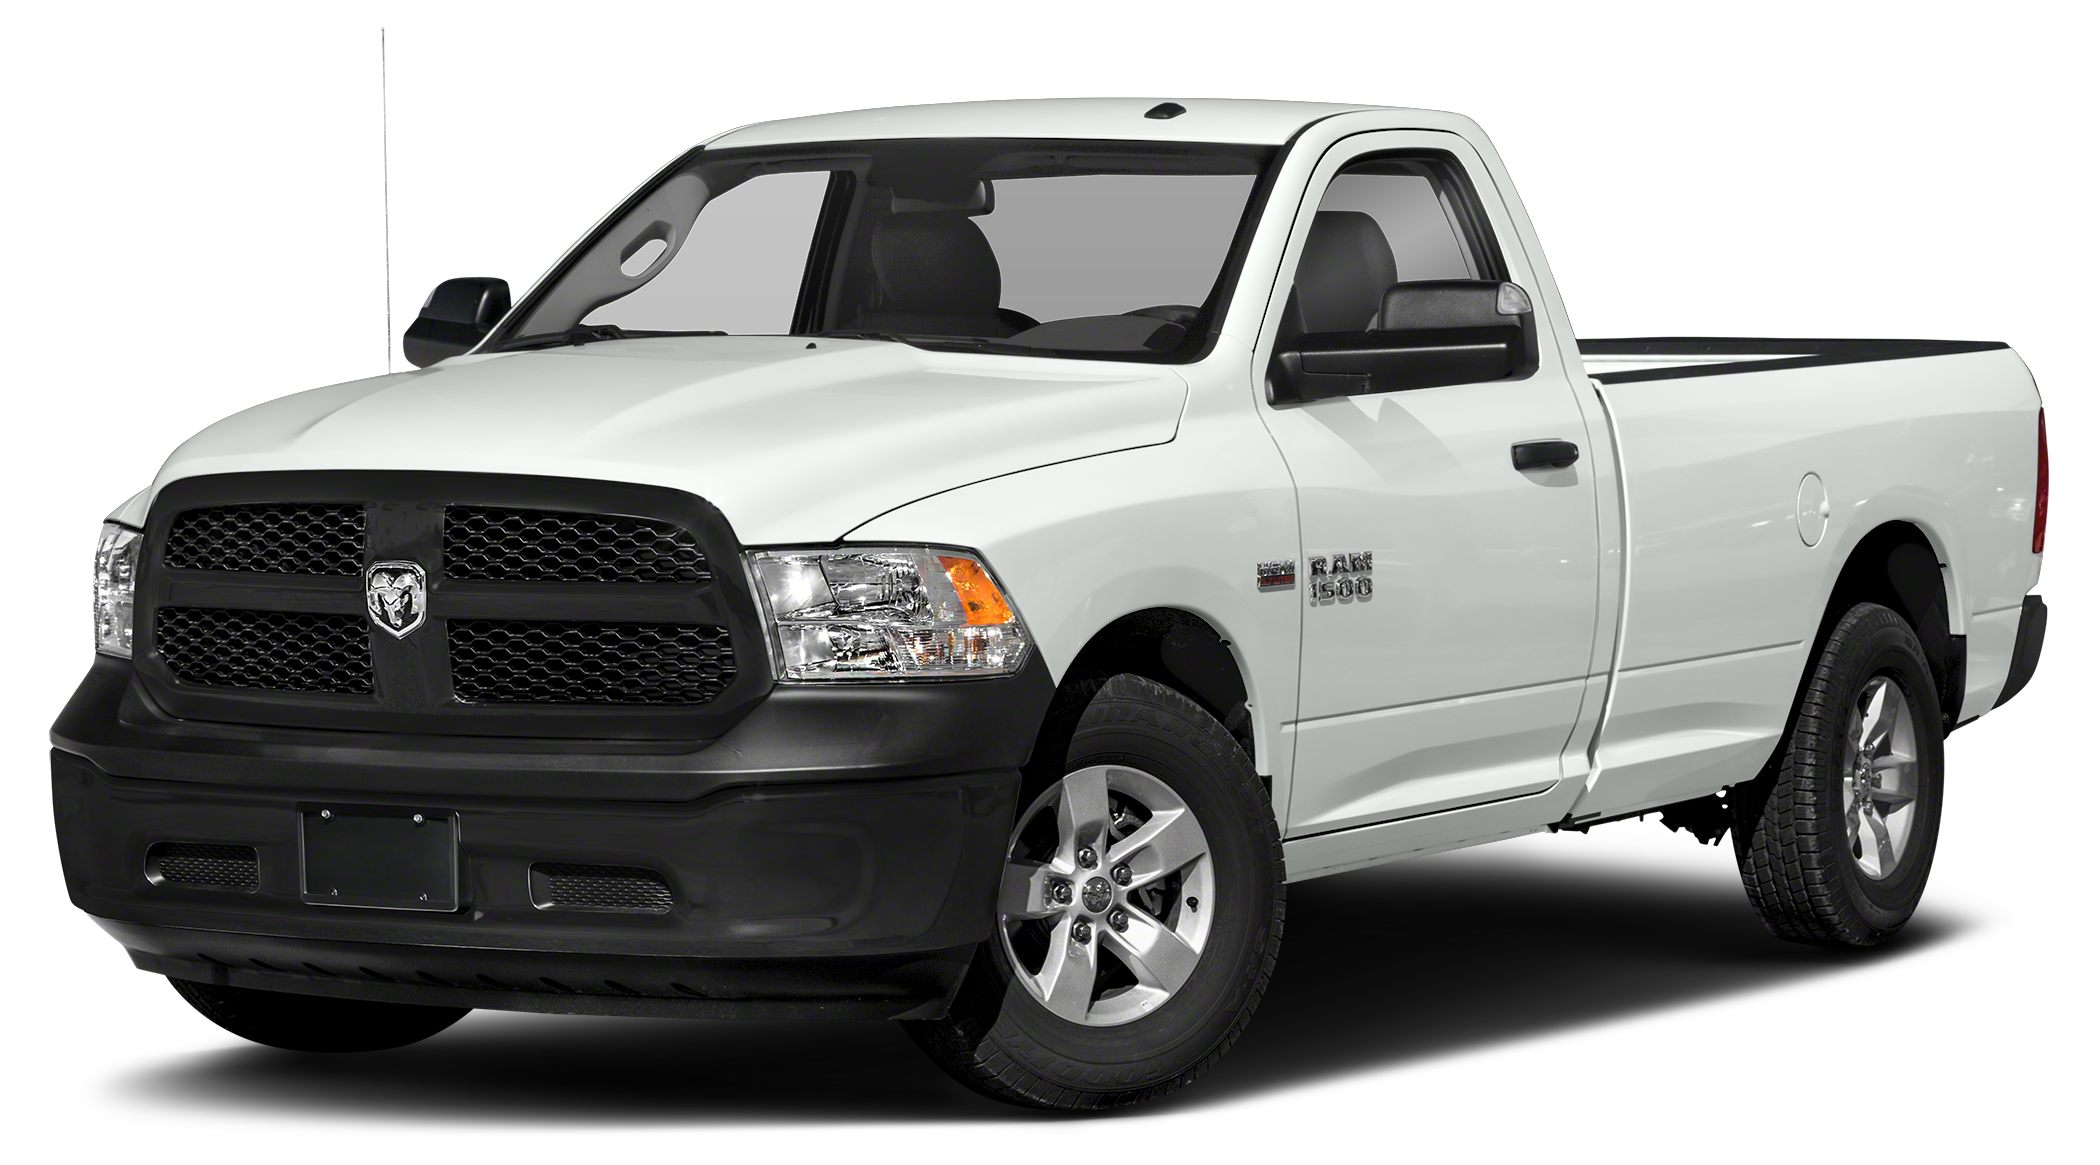 2016 RAM 1500 TradesmanExpress FUEL EFFICIENT 25 MPG Hwy17 MPG City Bright White Clear Coat ext